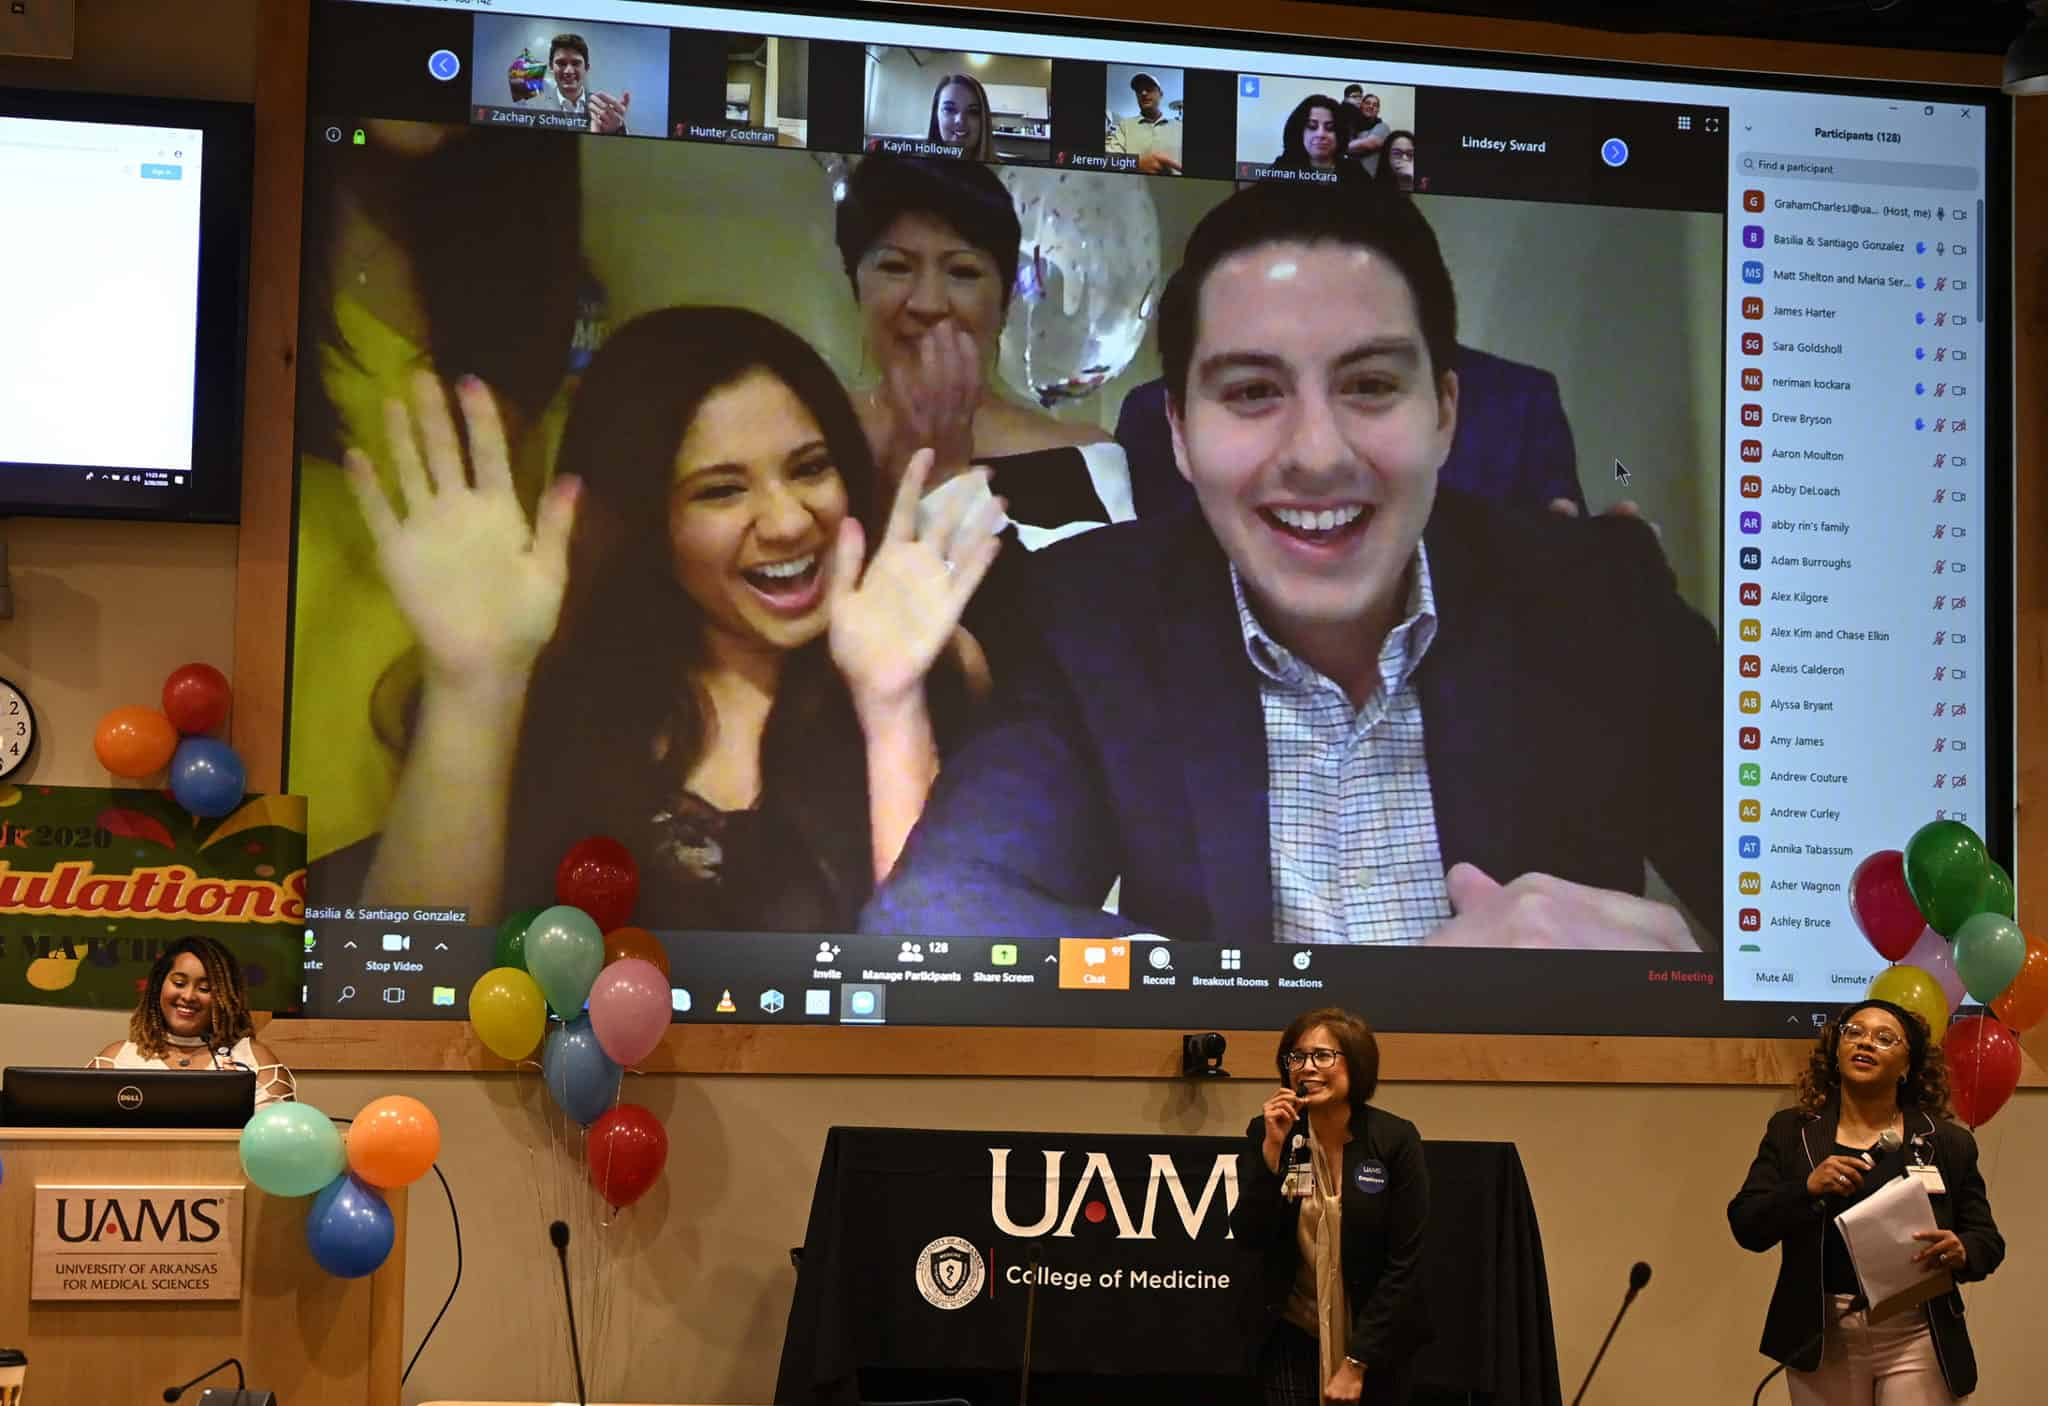 Students on screen with Dr. Tariq in foreground